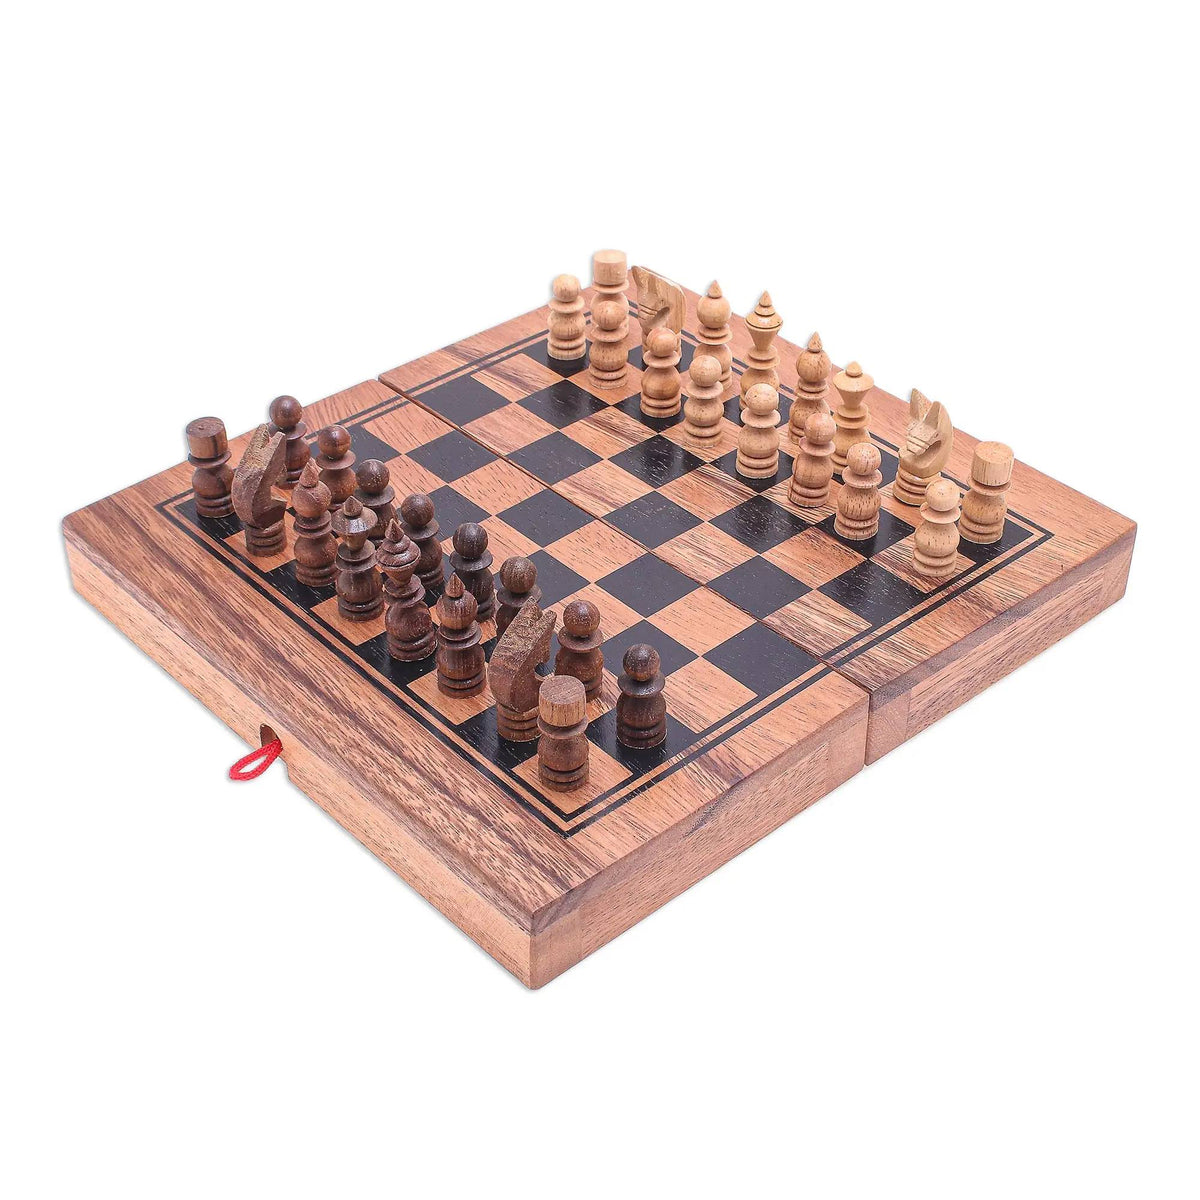 Raintree Wood Chess and Backgammon Handmade Game